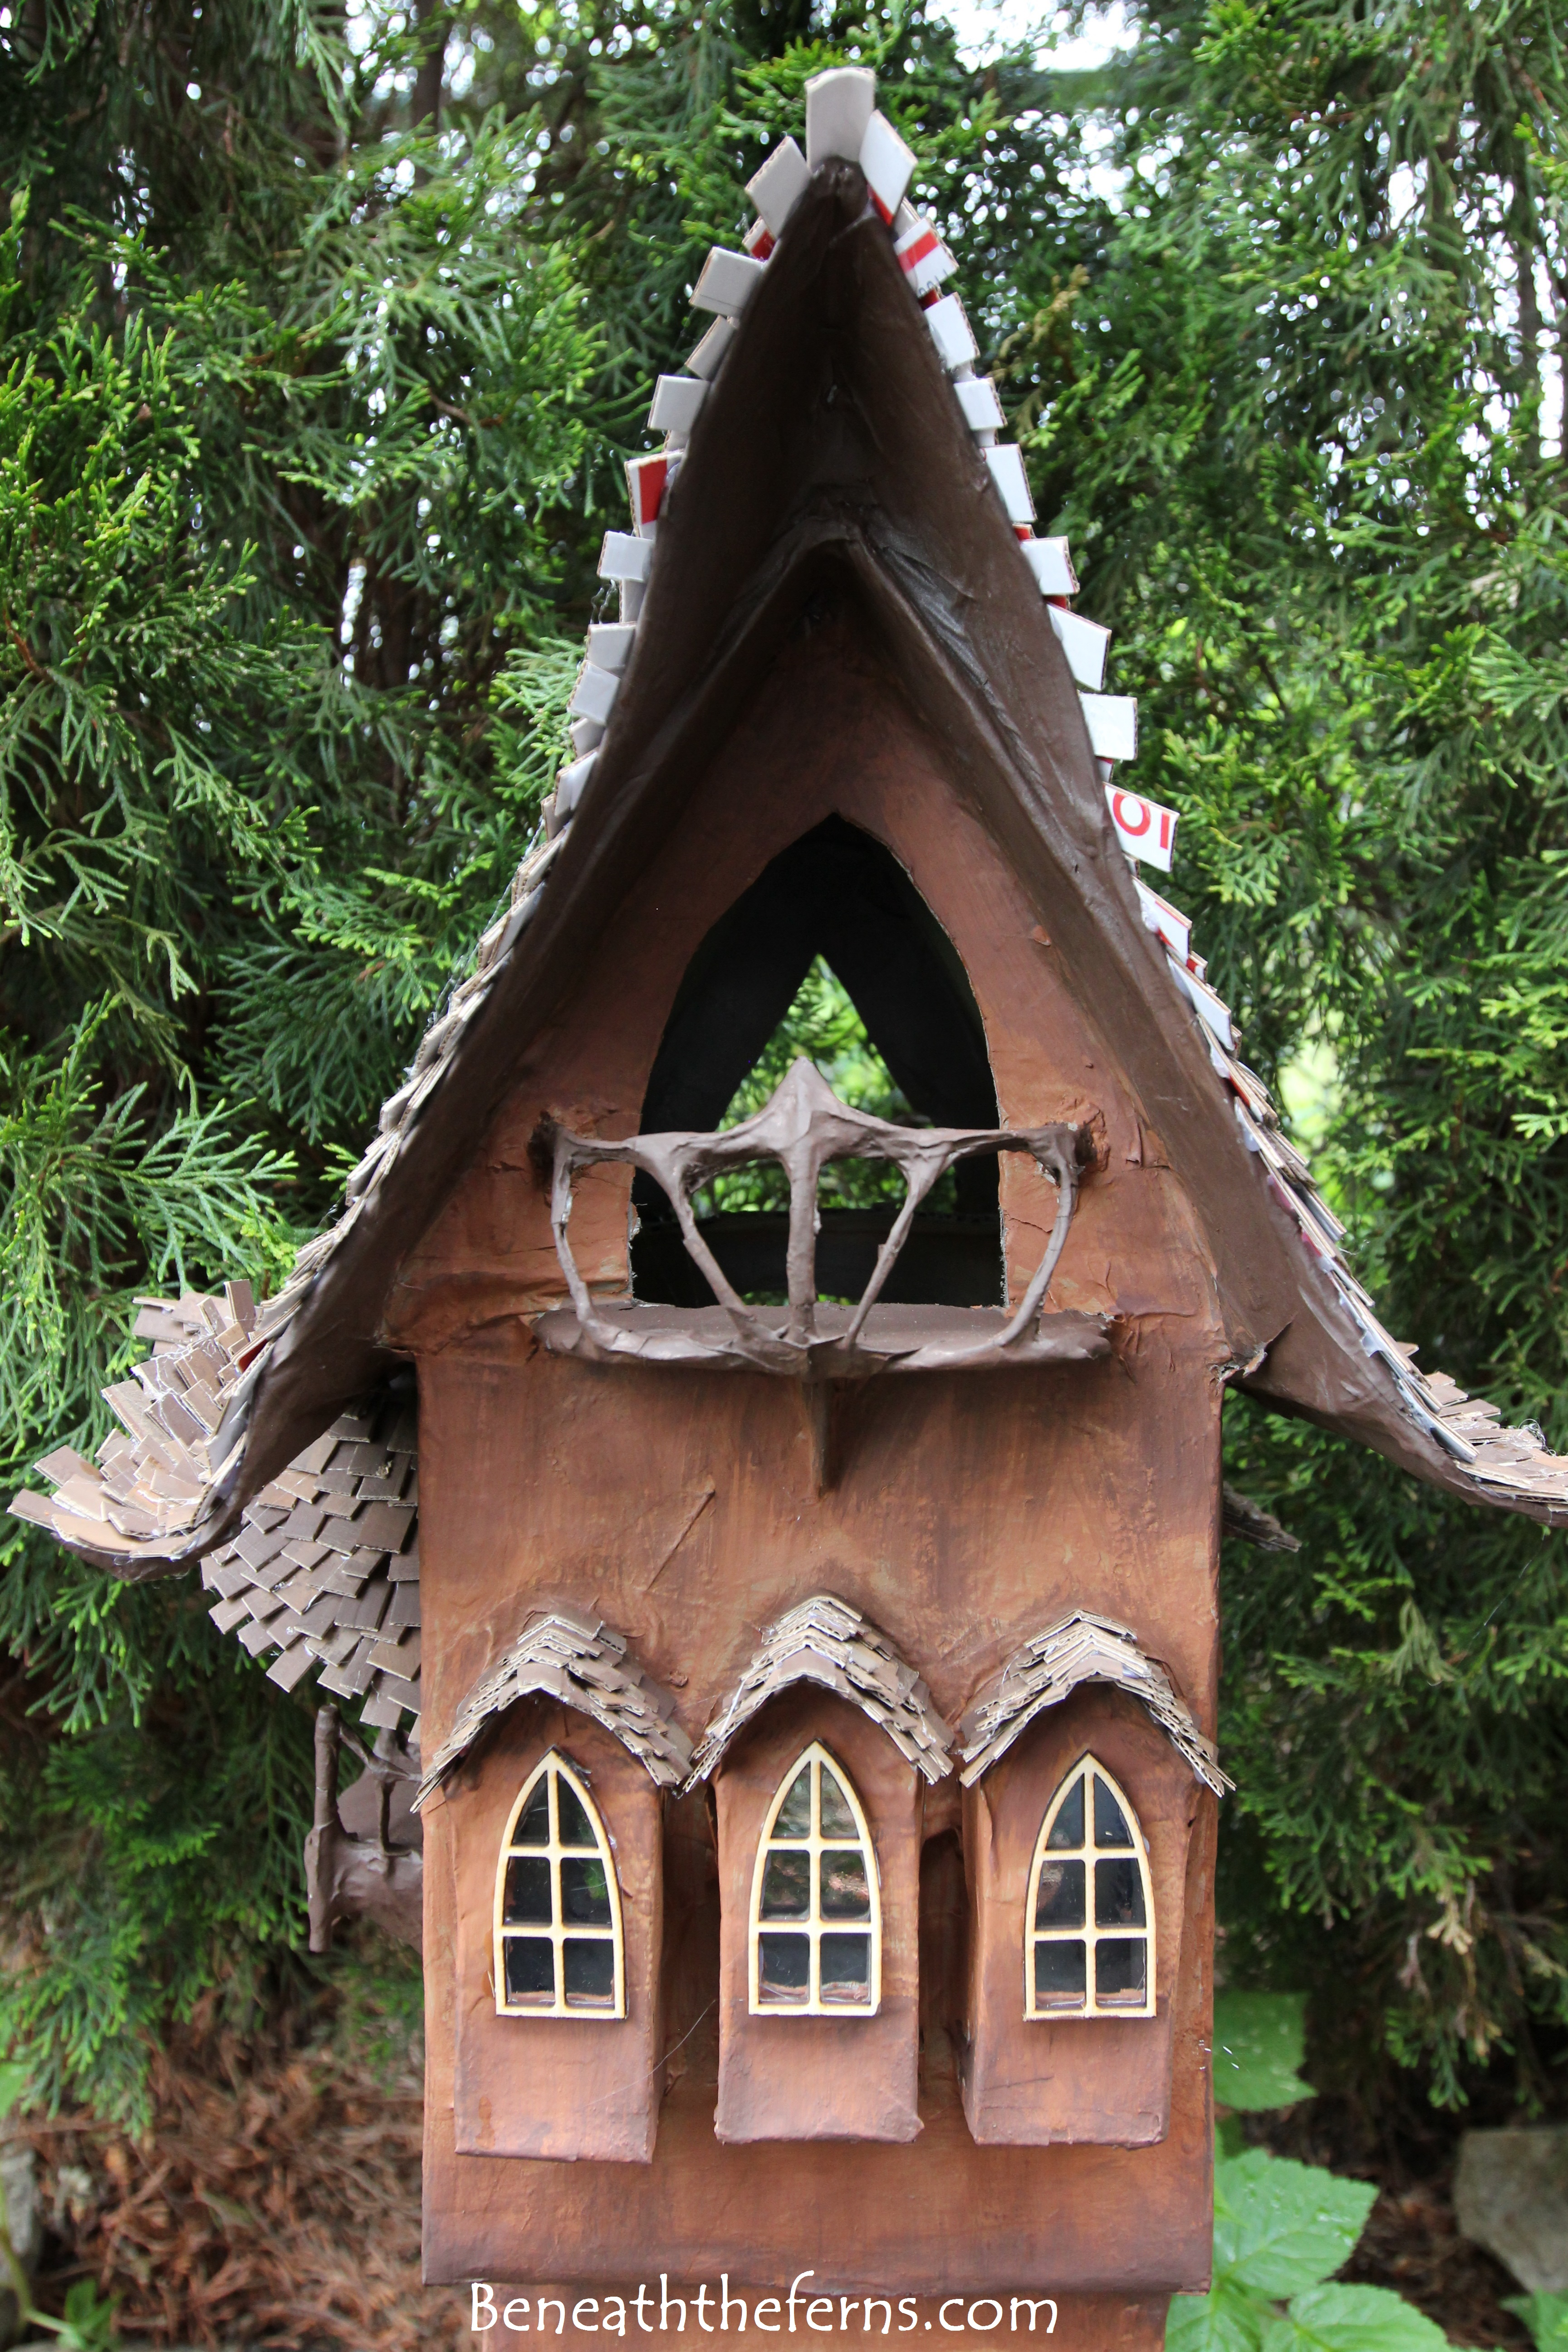 Fairy Gardens House Miniature Scale Tower By Beneath The Ferns Close Up  Front